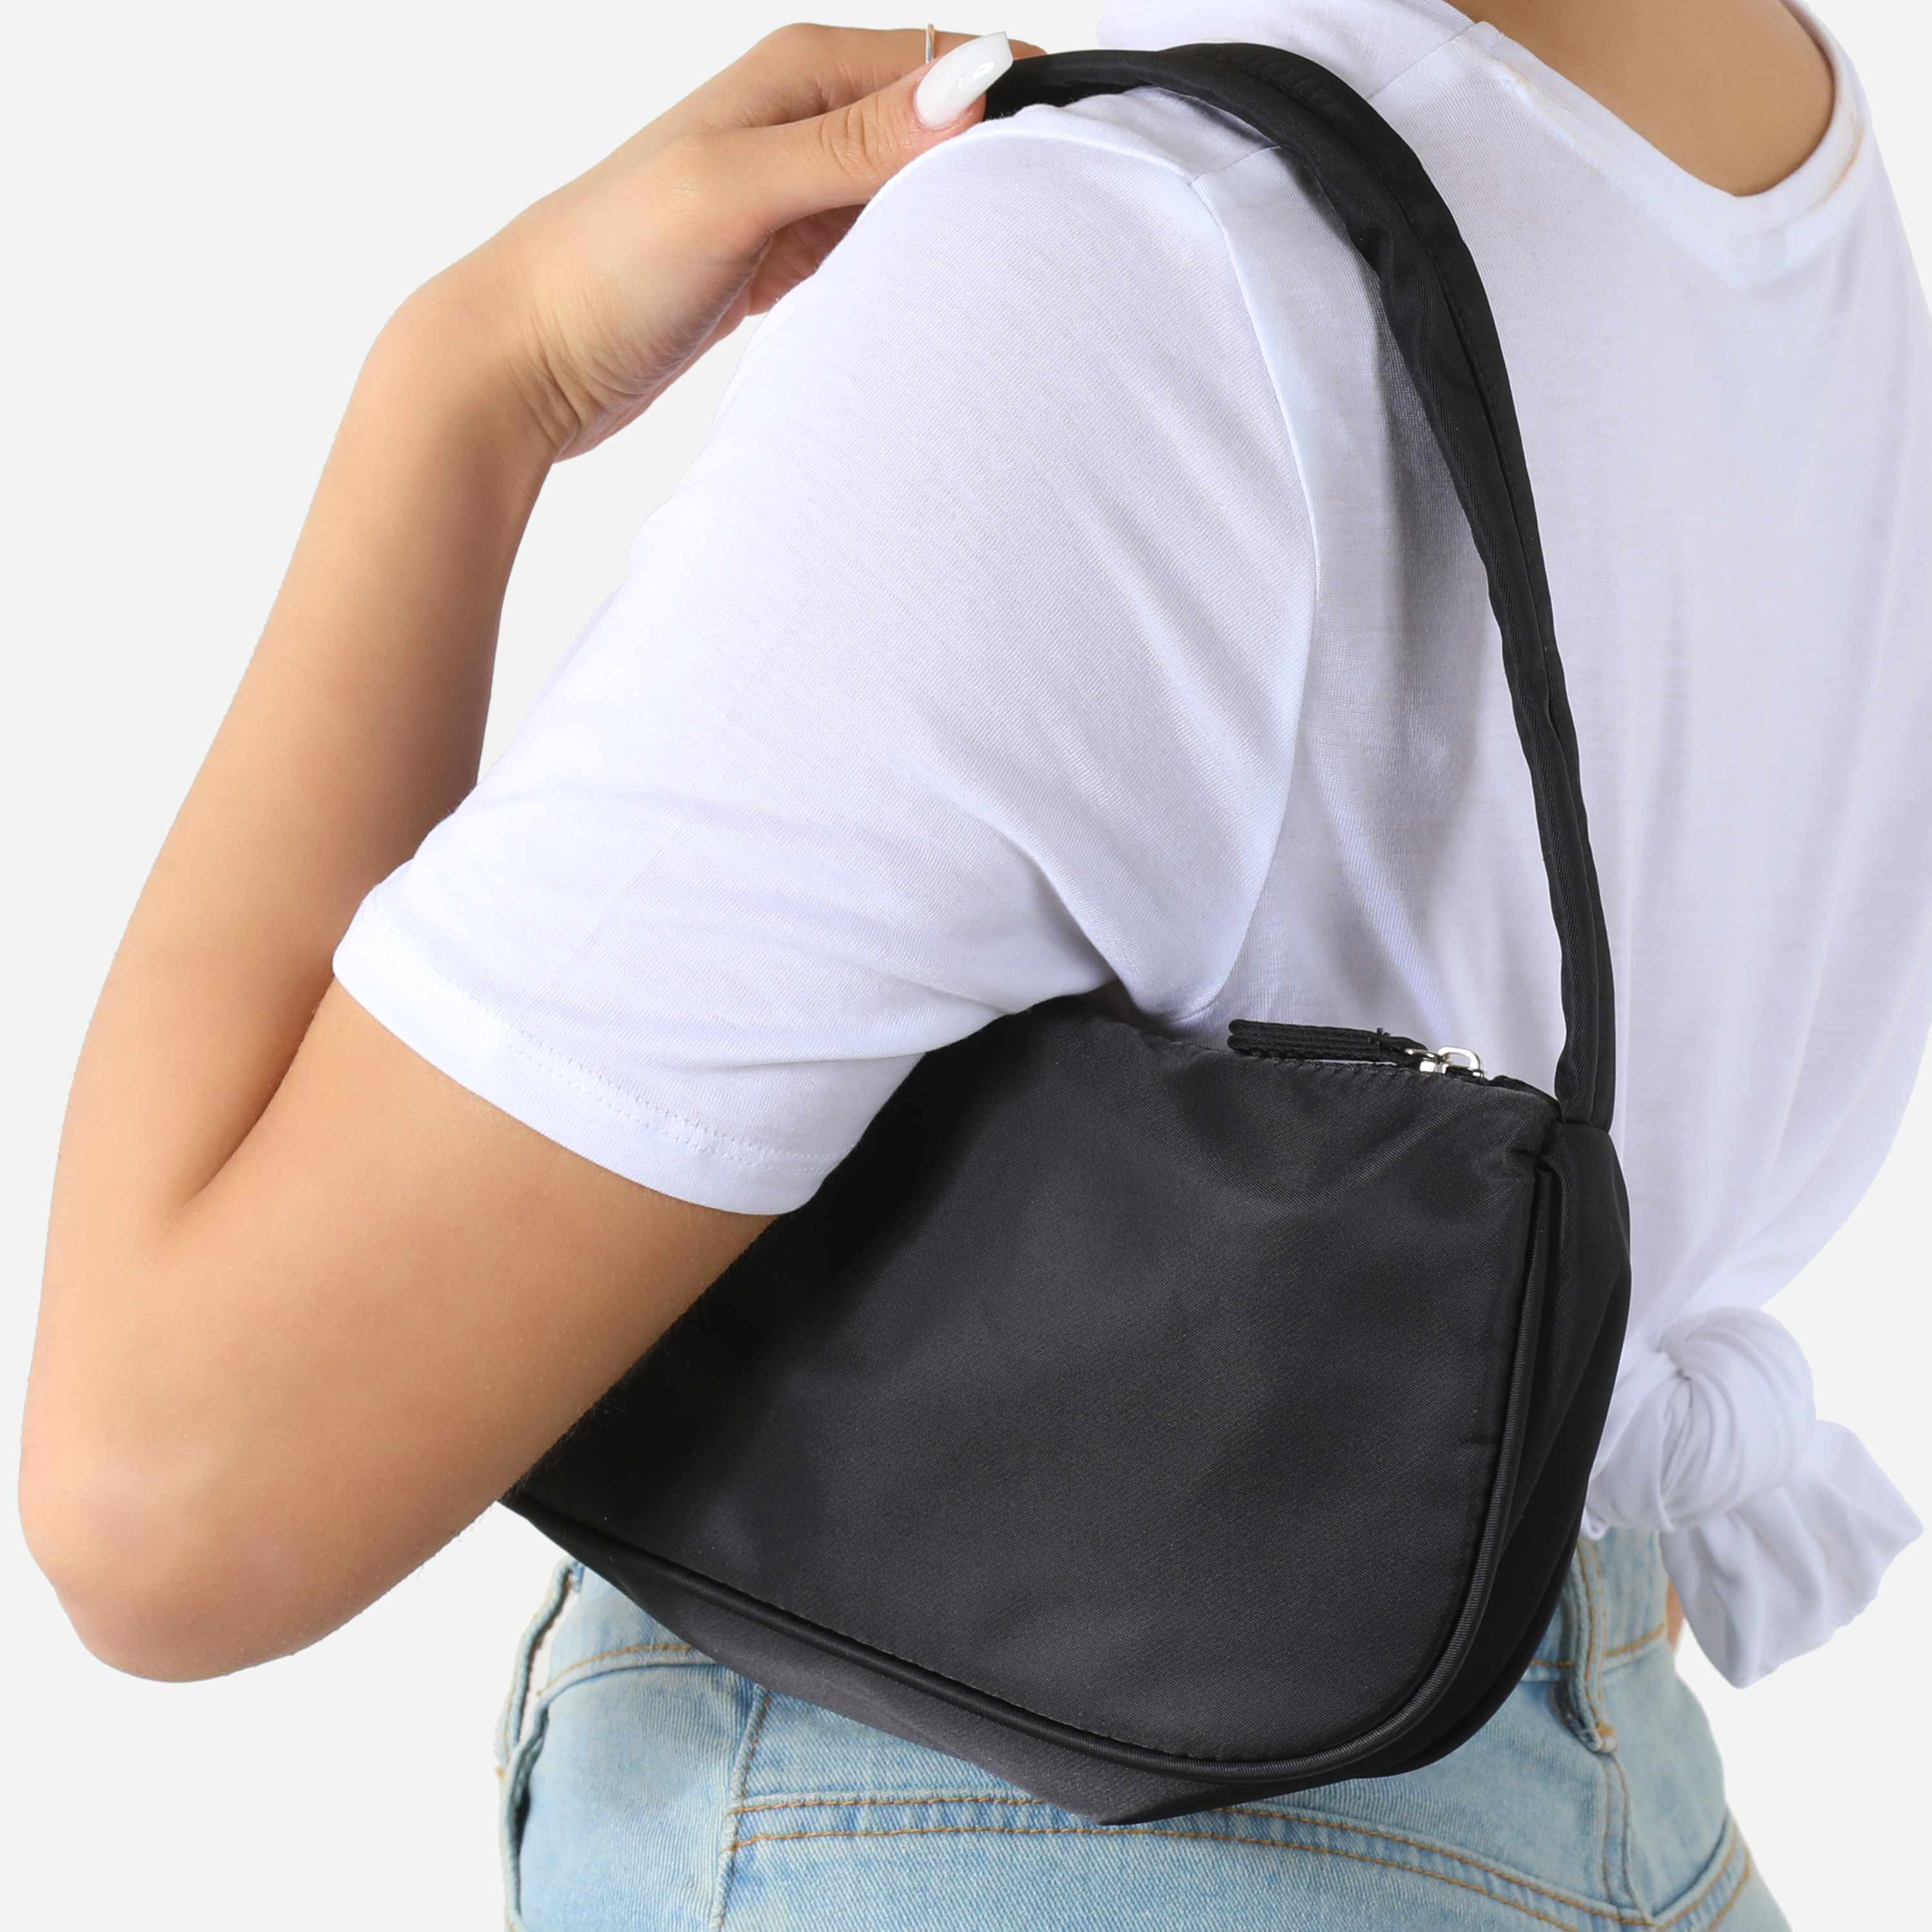 Baguette Shoulder Bag In Black Nylon